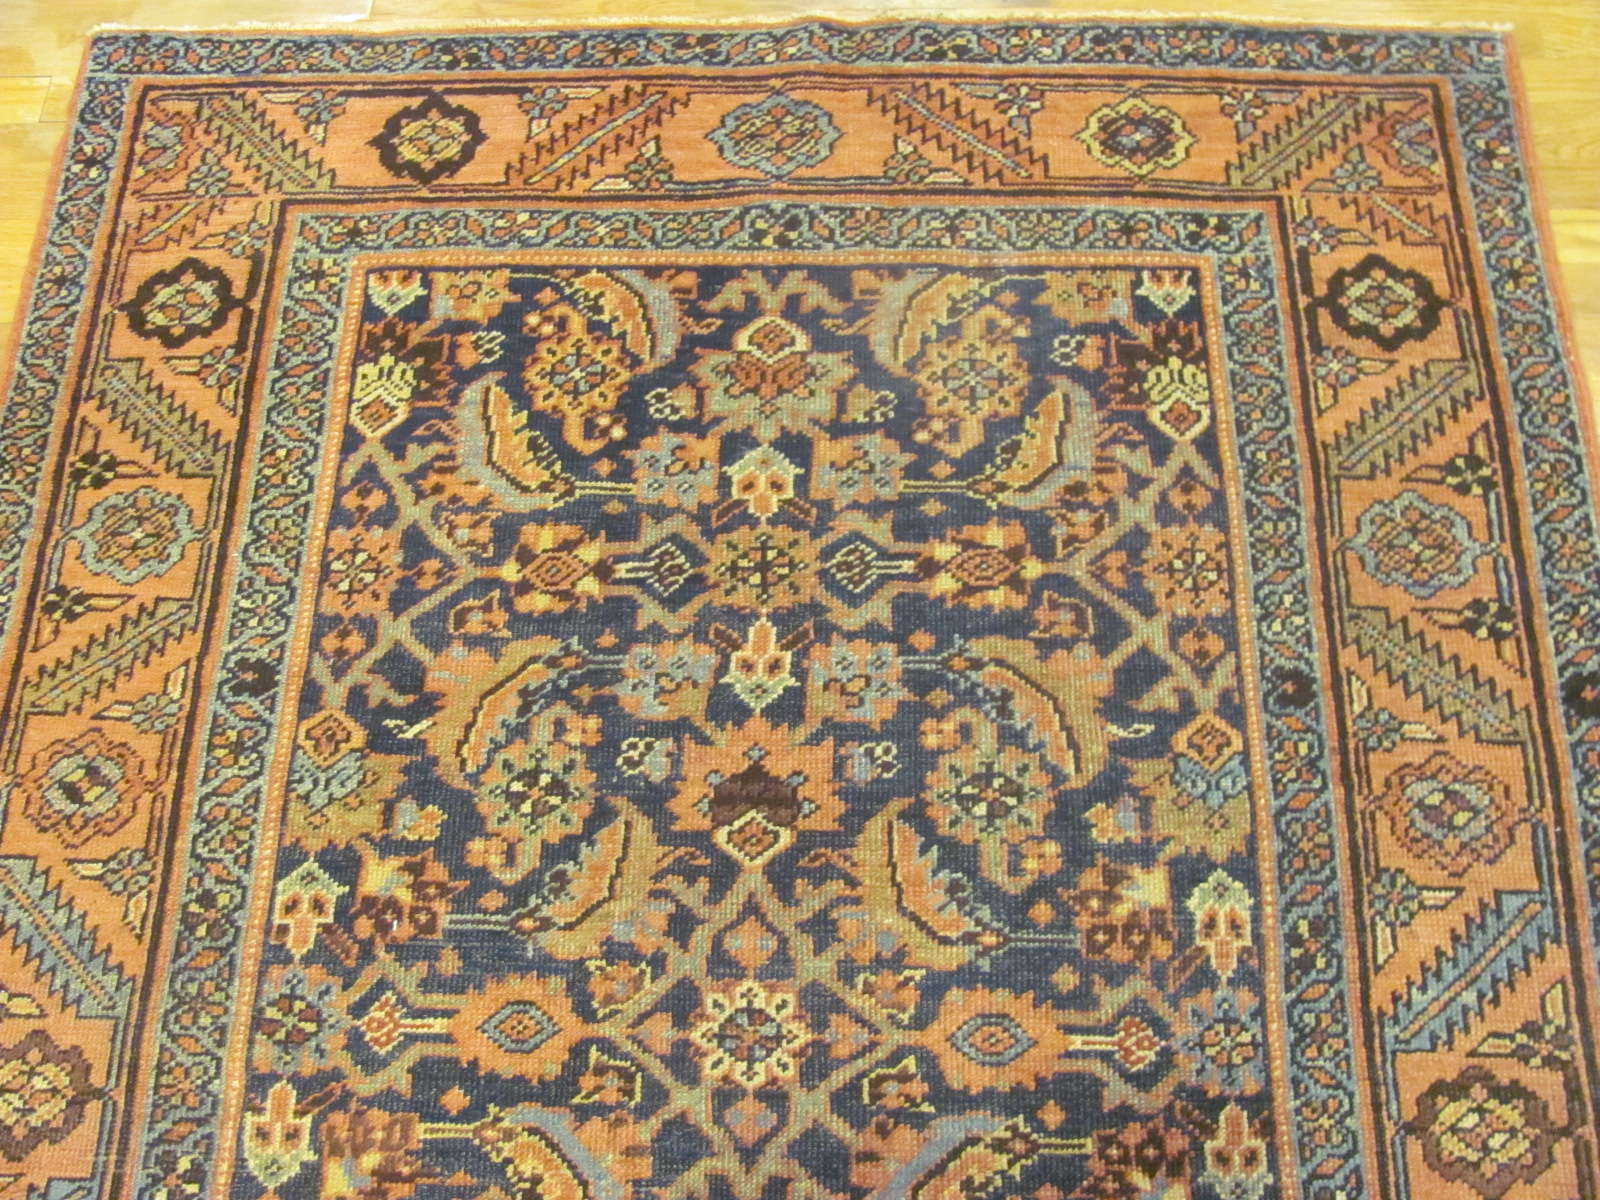 24614 antique persian heriz rug 4,8 x 6,5 -1